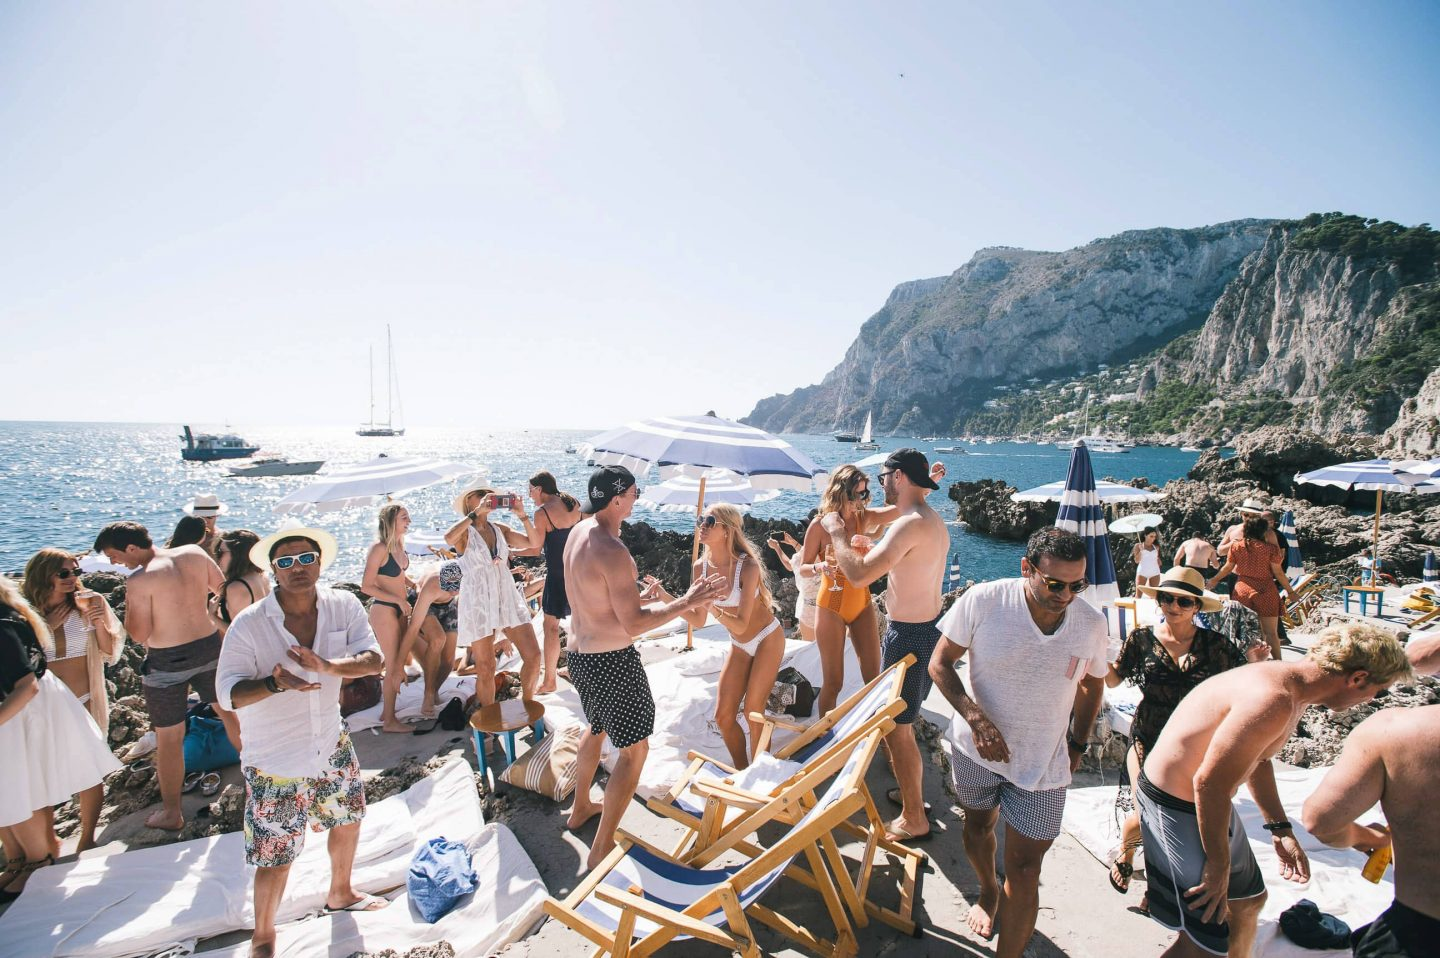 Guests outside at La Fontelina in Capri at this Positano wedding weekend in Villa Tre Ville | Photo by Gianni di Natale